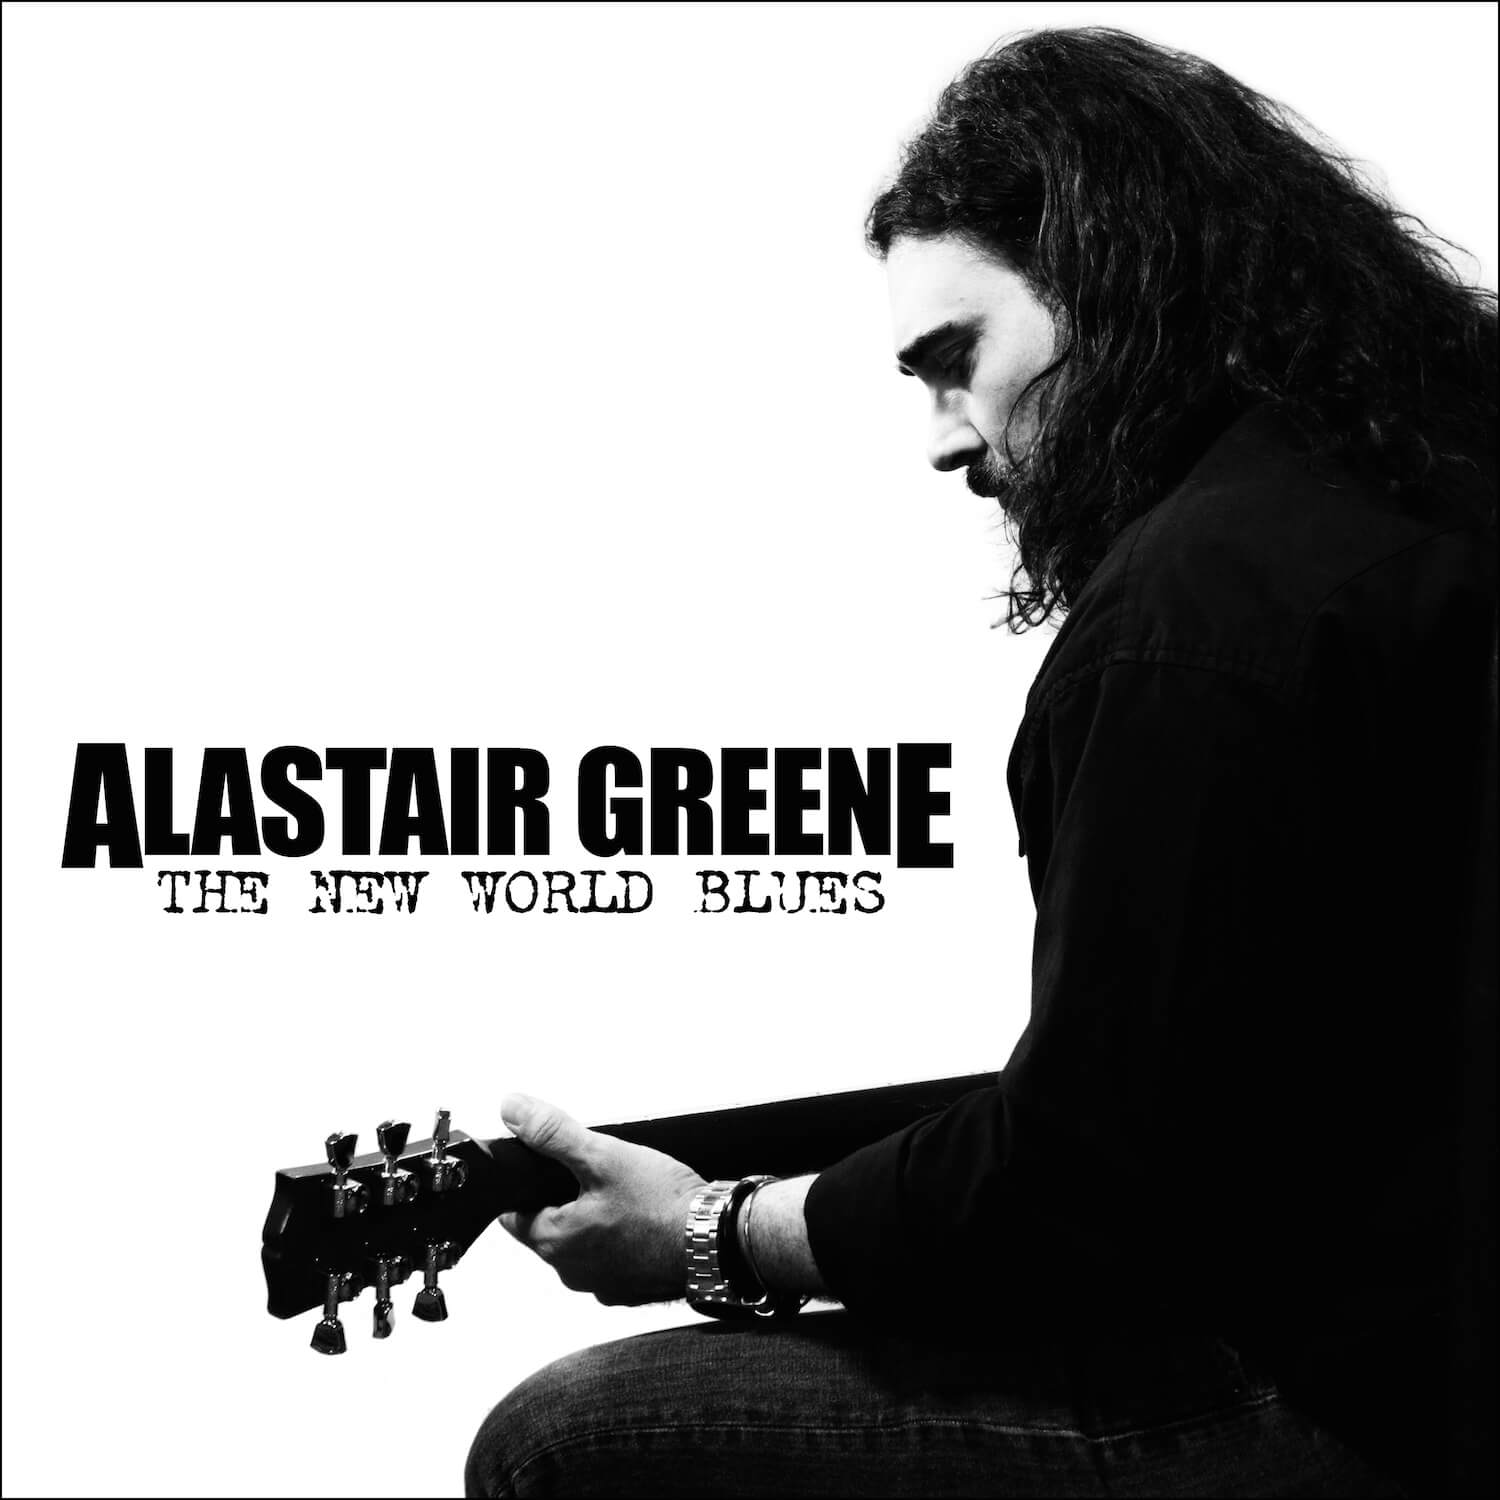 ¿Qué Estás Escuchando? - Página 2 Alastair-Greene-The-New-World-Blues